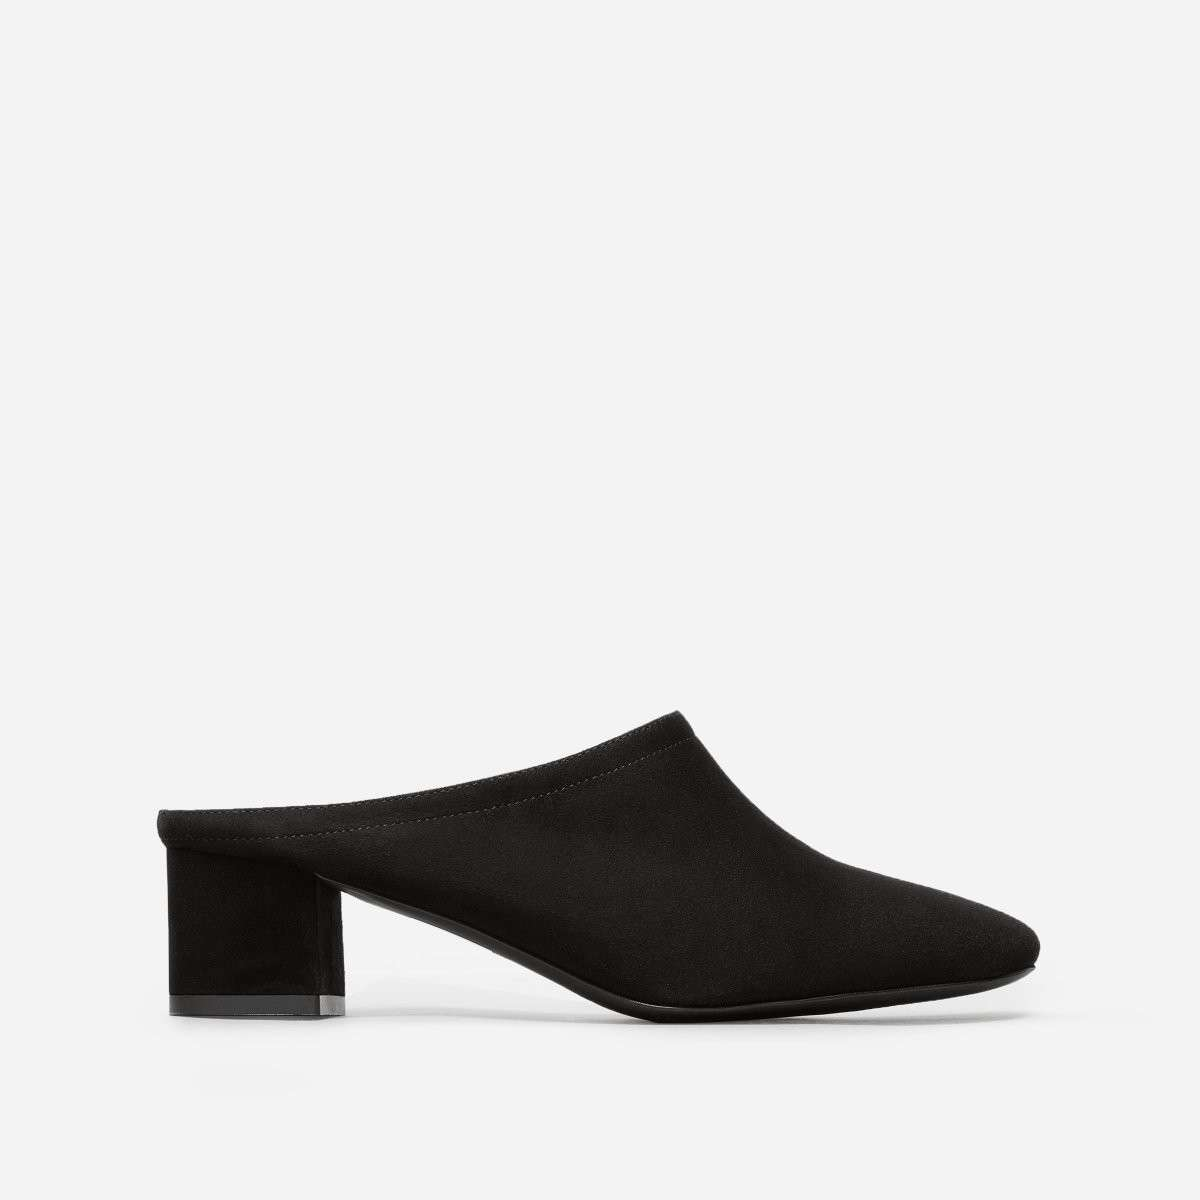 The Day Heel Mule